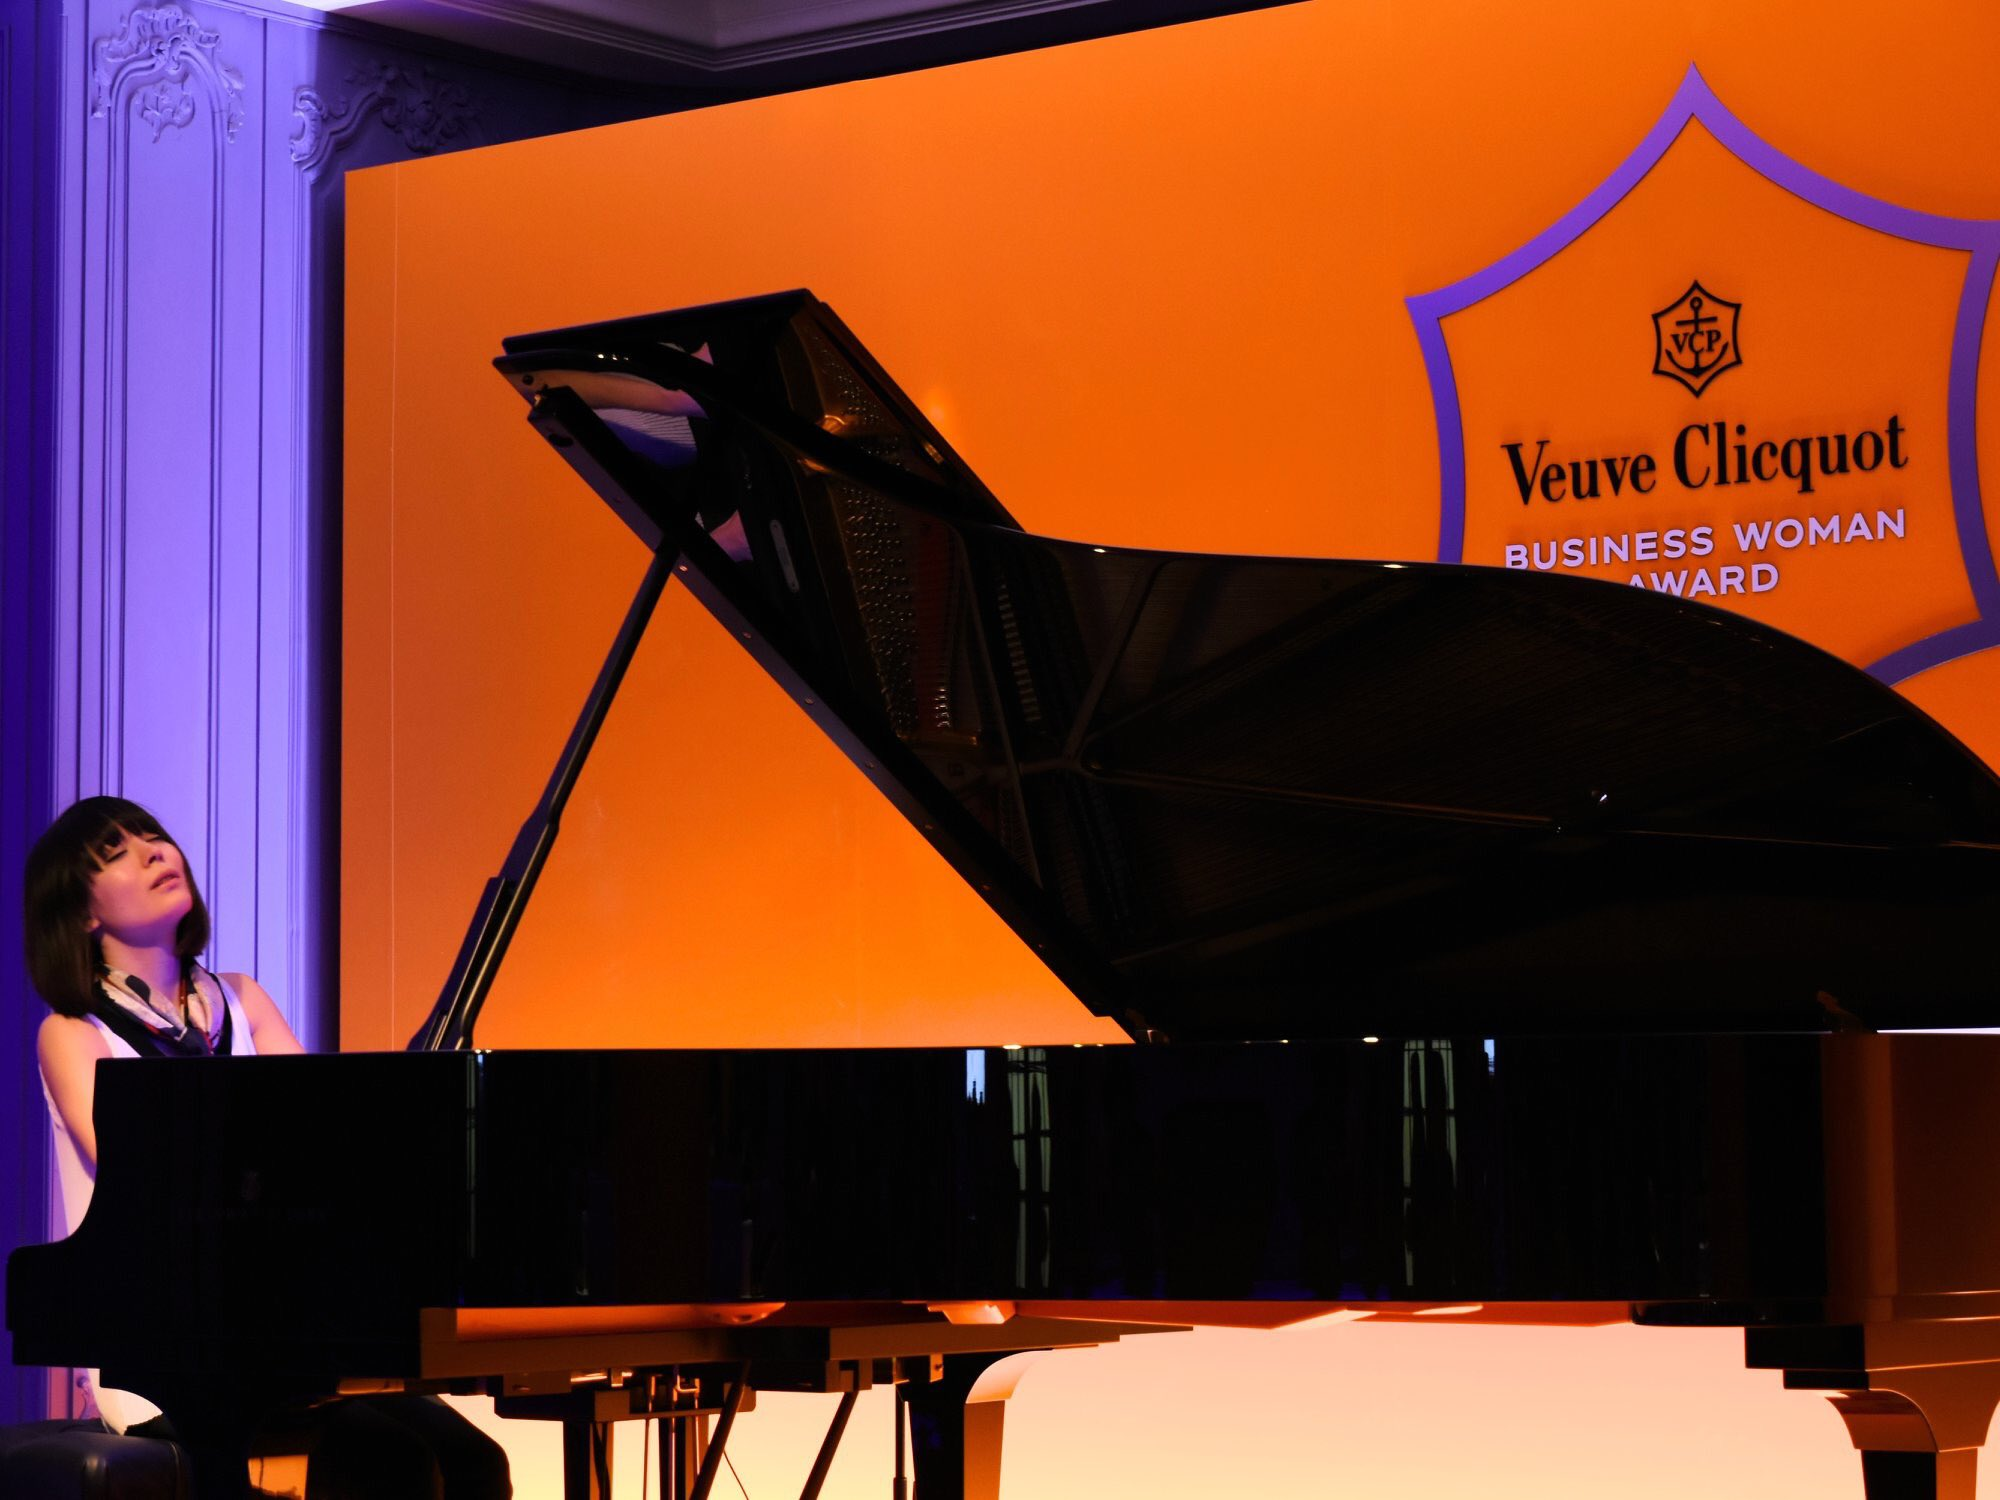 Reloaded twaddle – RT @AMusicland: Alice Sara Ott at Veuve Clicquot Business Woman Award 2018 Cerem...